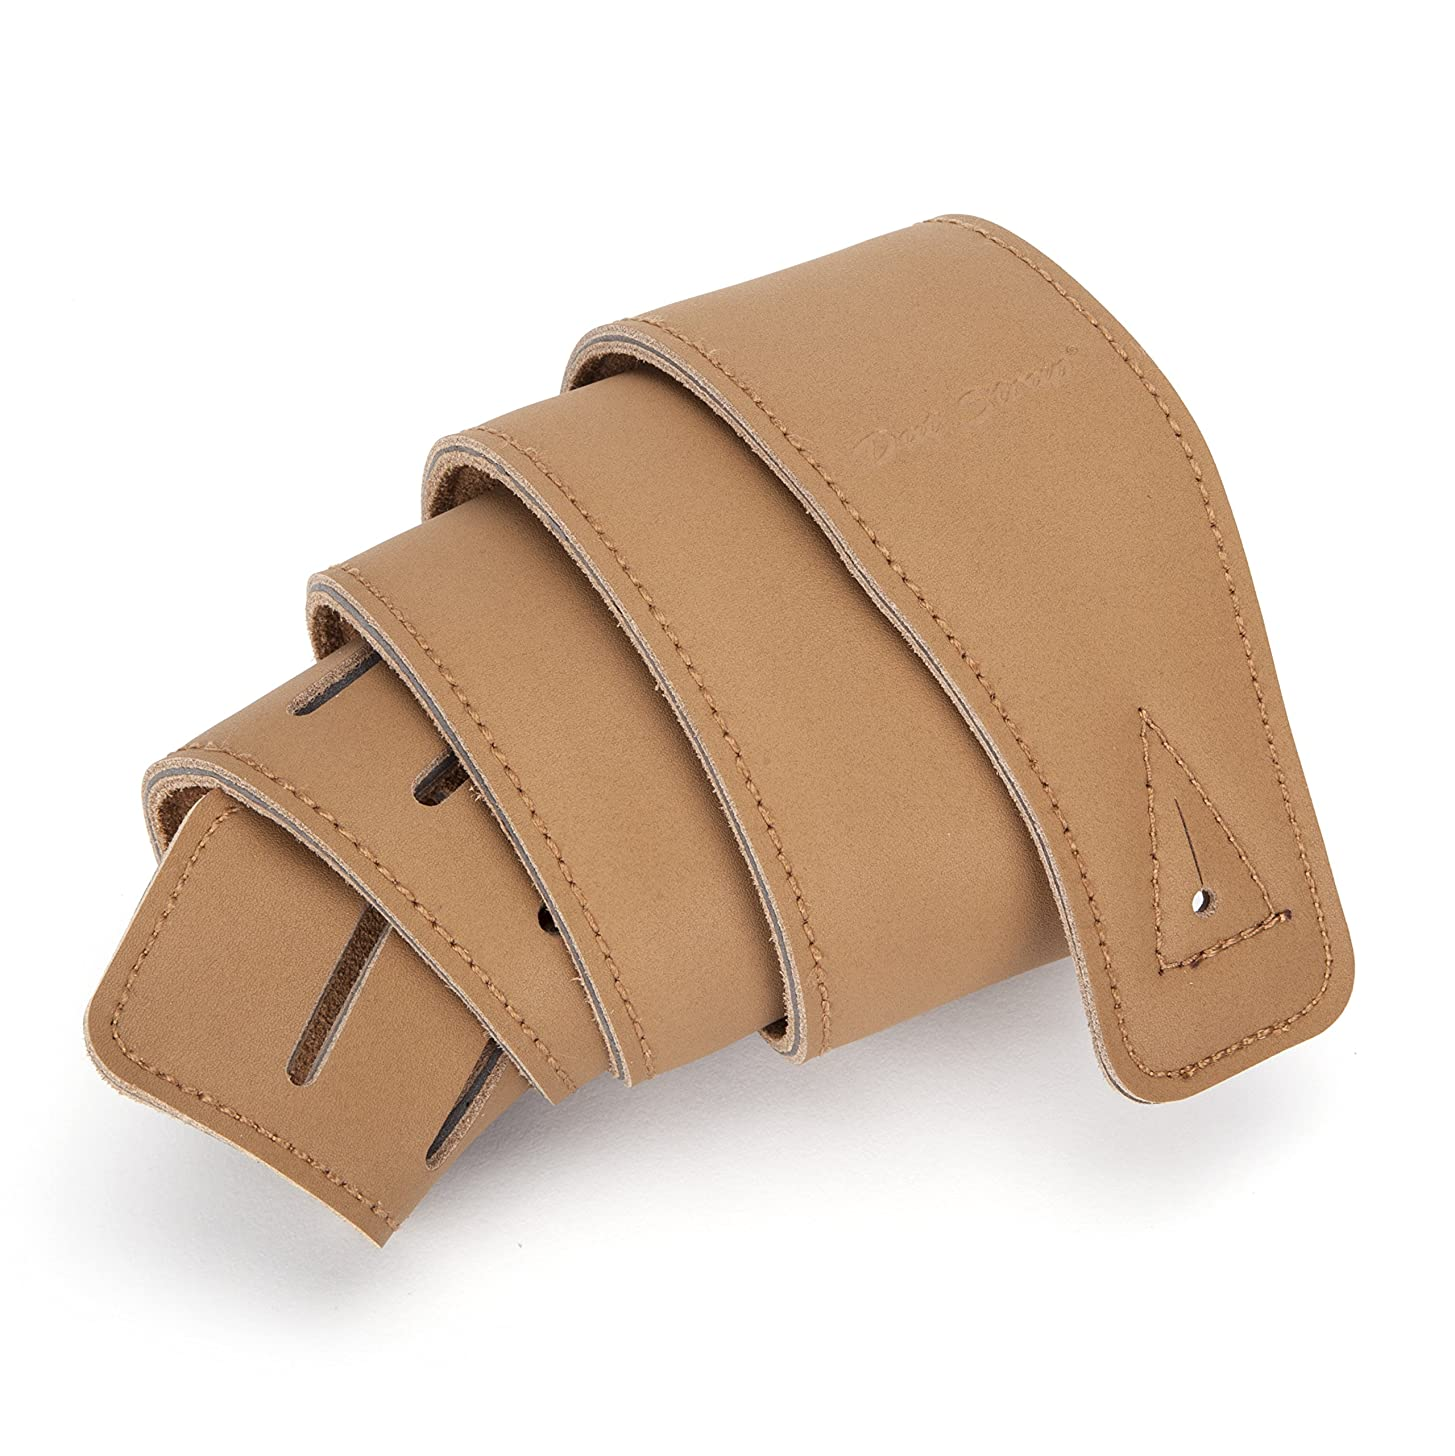 Dat Strap #1 Best Leather Guitar Strap, for Electric, Acoustic, Electro Acoustic, Bass, and Classical Guitar, Padded for Extra Comfort, Light Brown, Includes 2 FREE Pick Geek Steel Picks, Perfect Gift